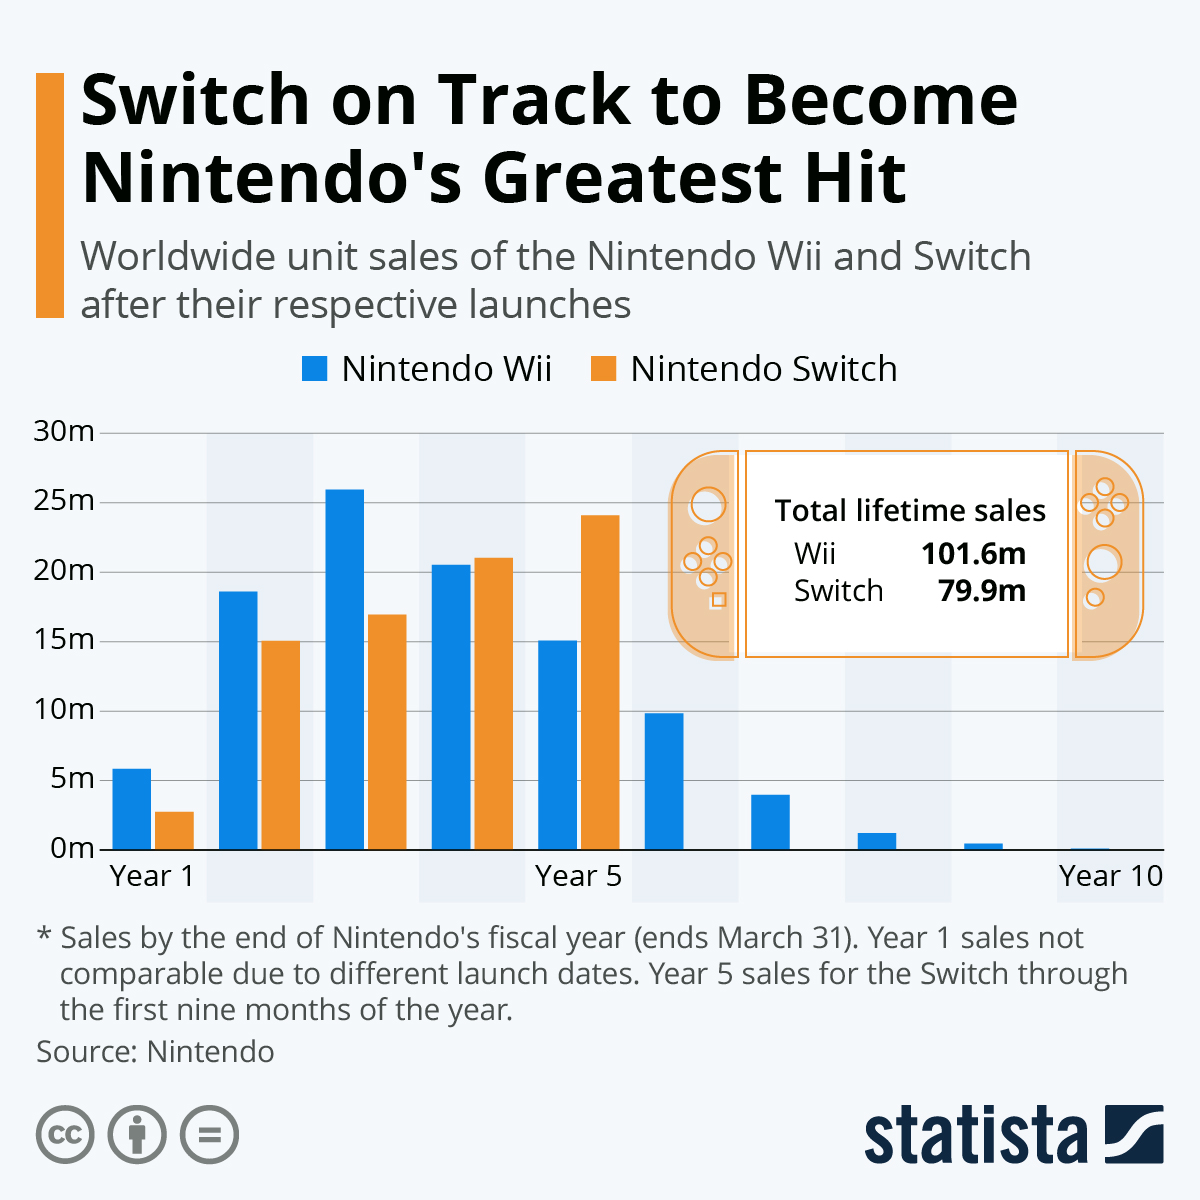 Nintendo Switch is on track to become the company's greatest hit